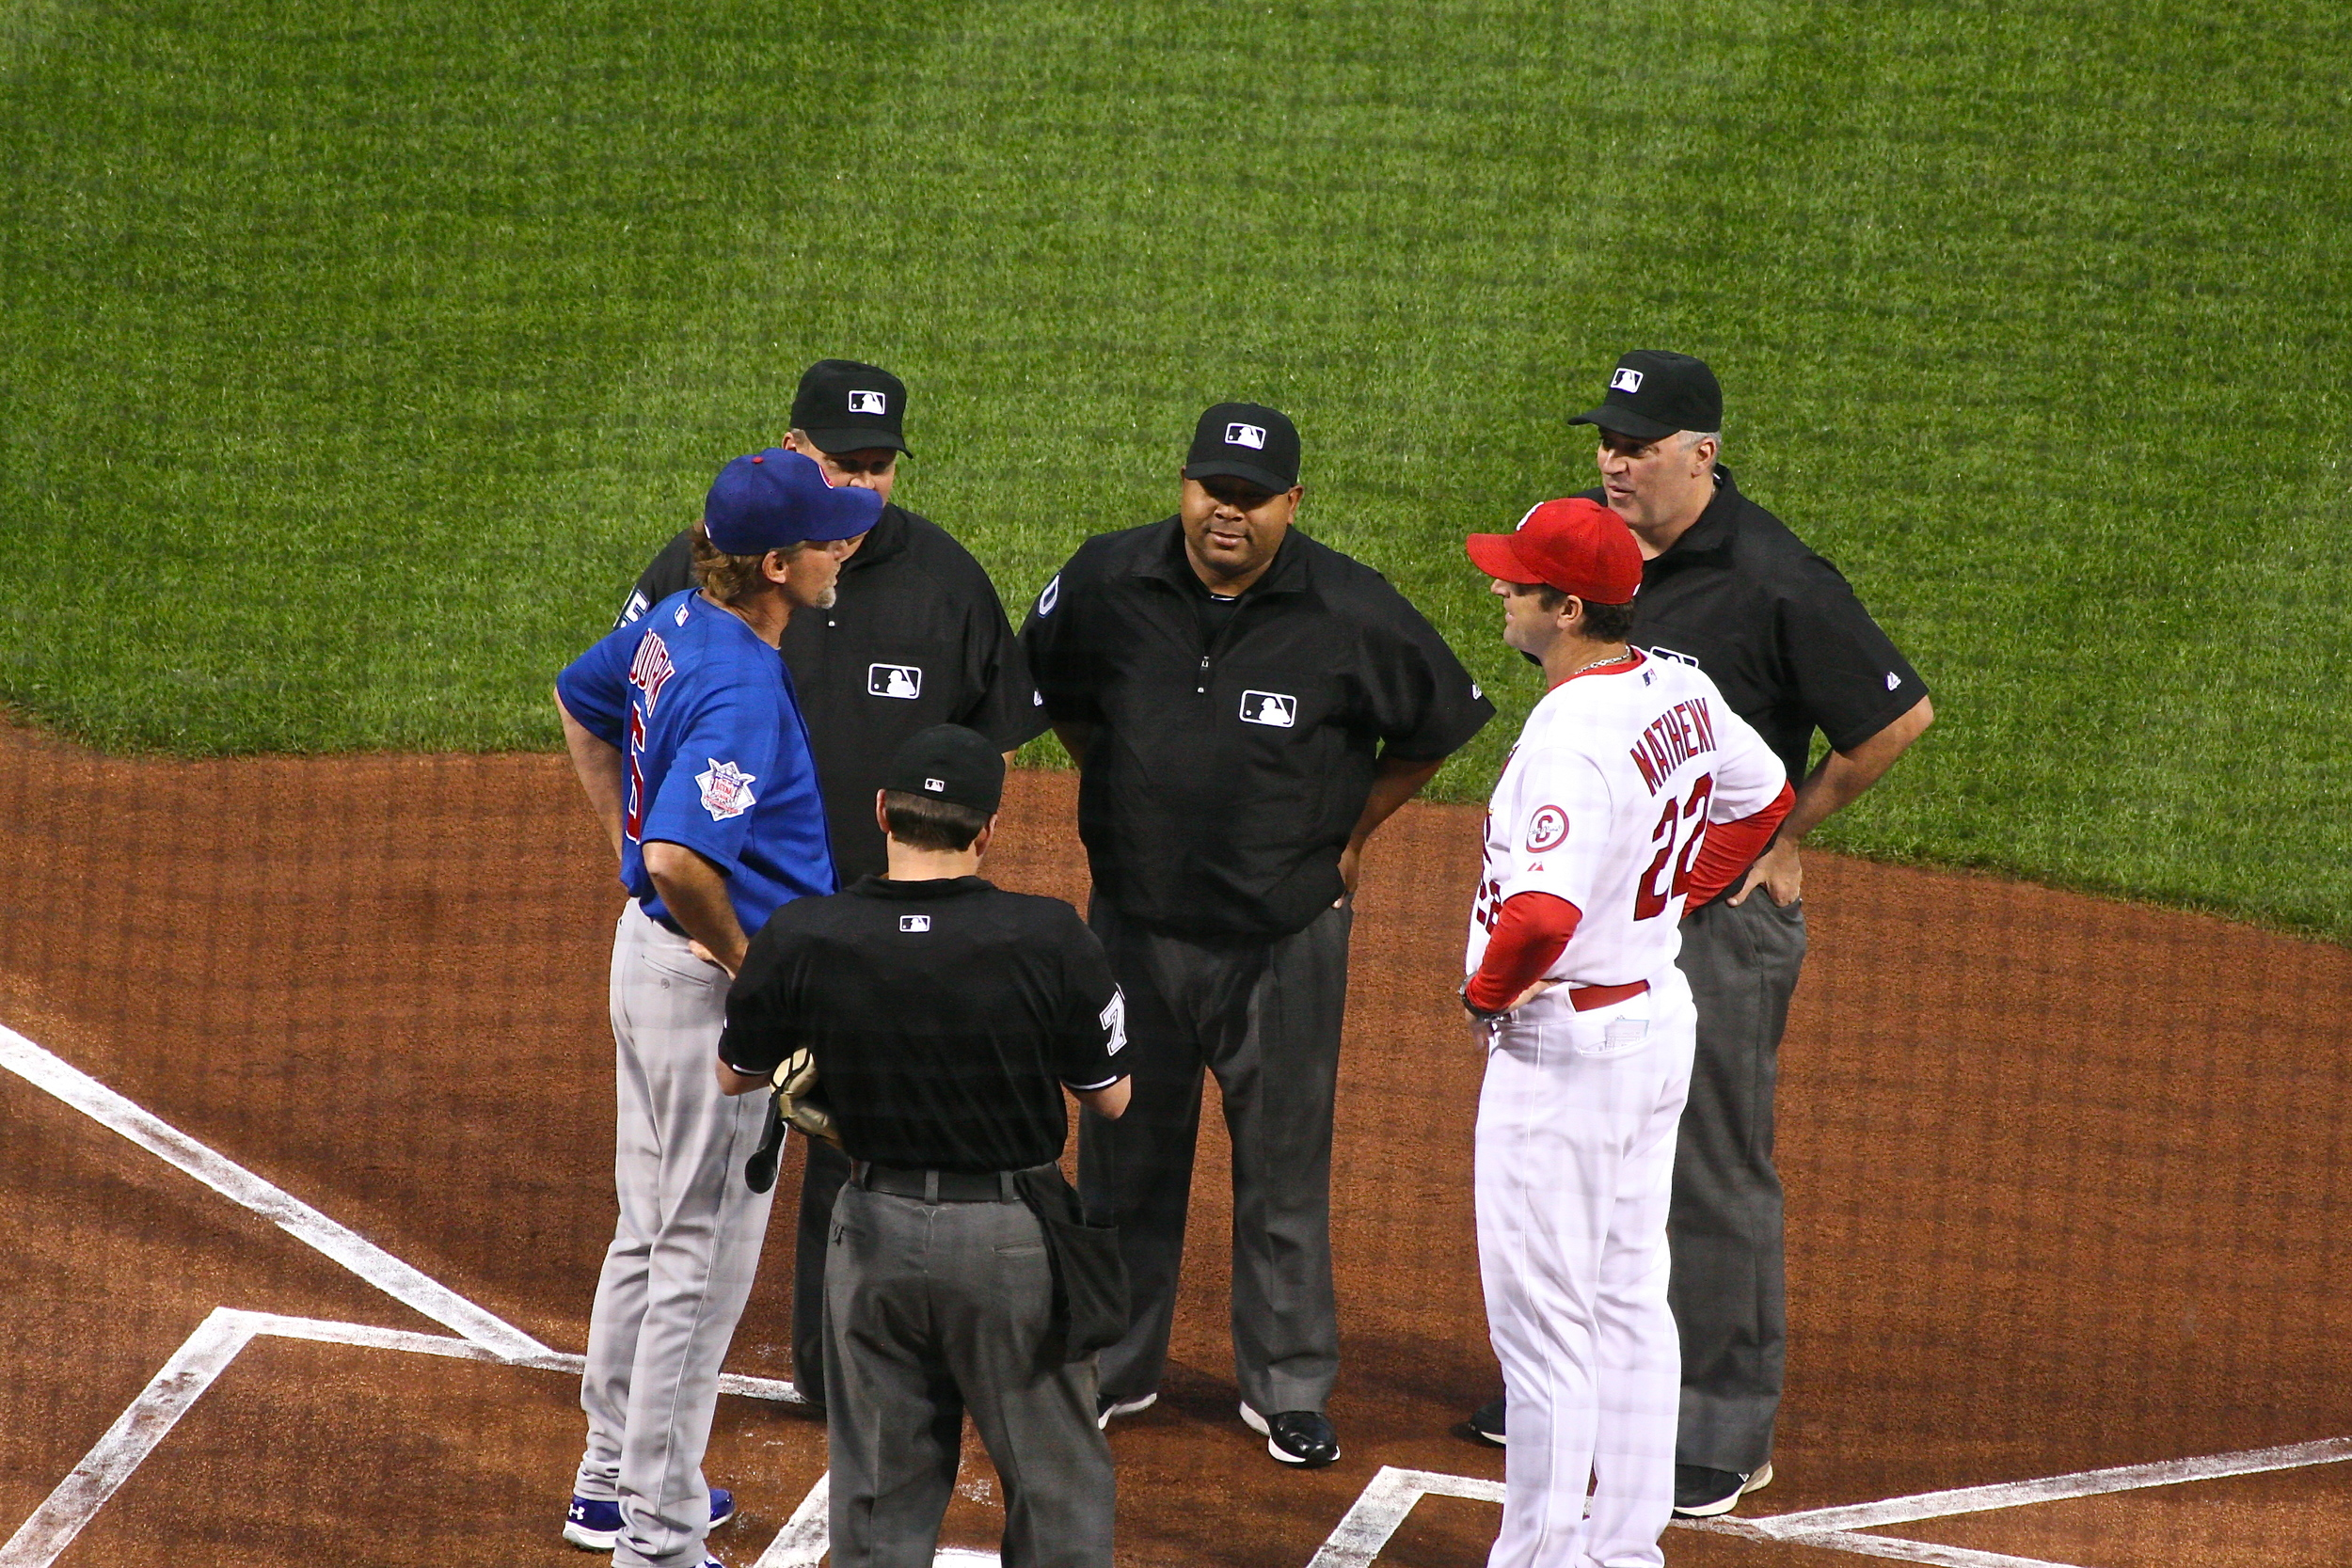 Exchanging lineups